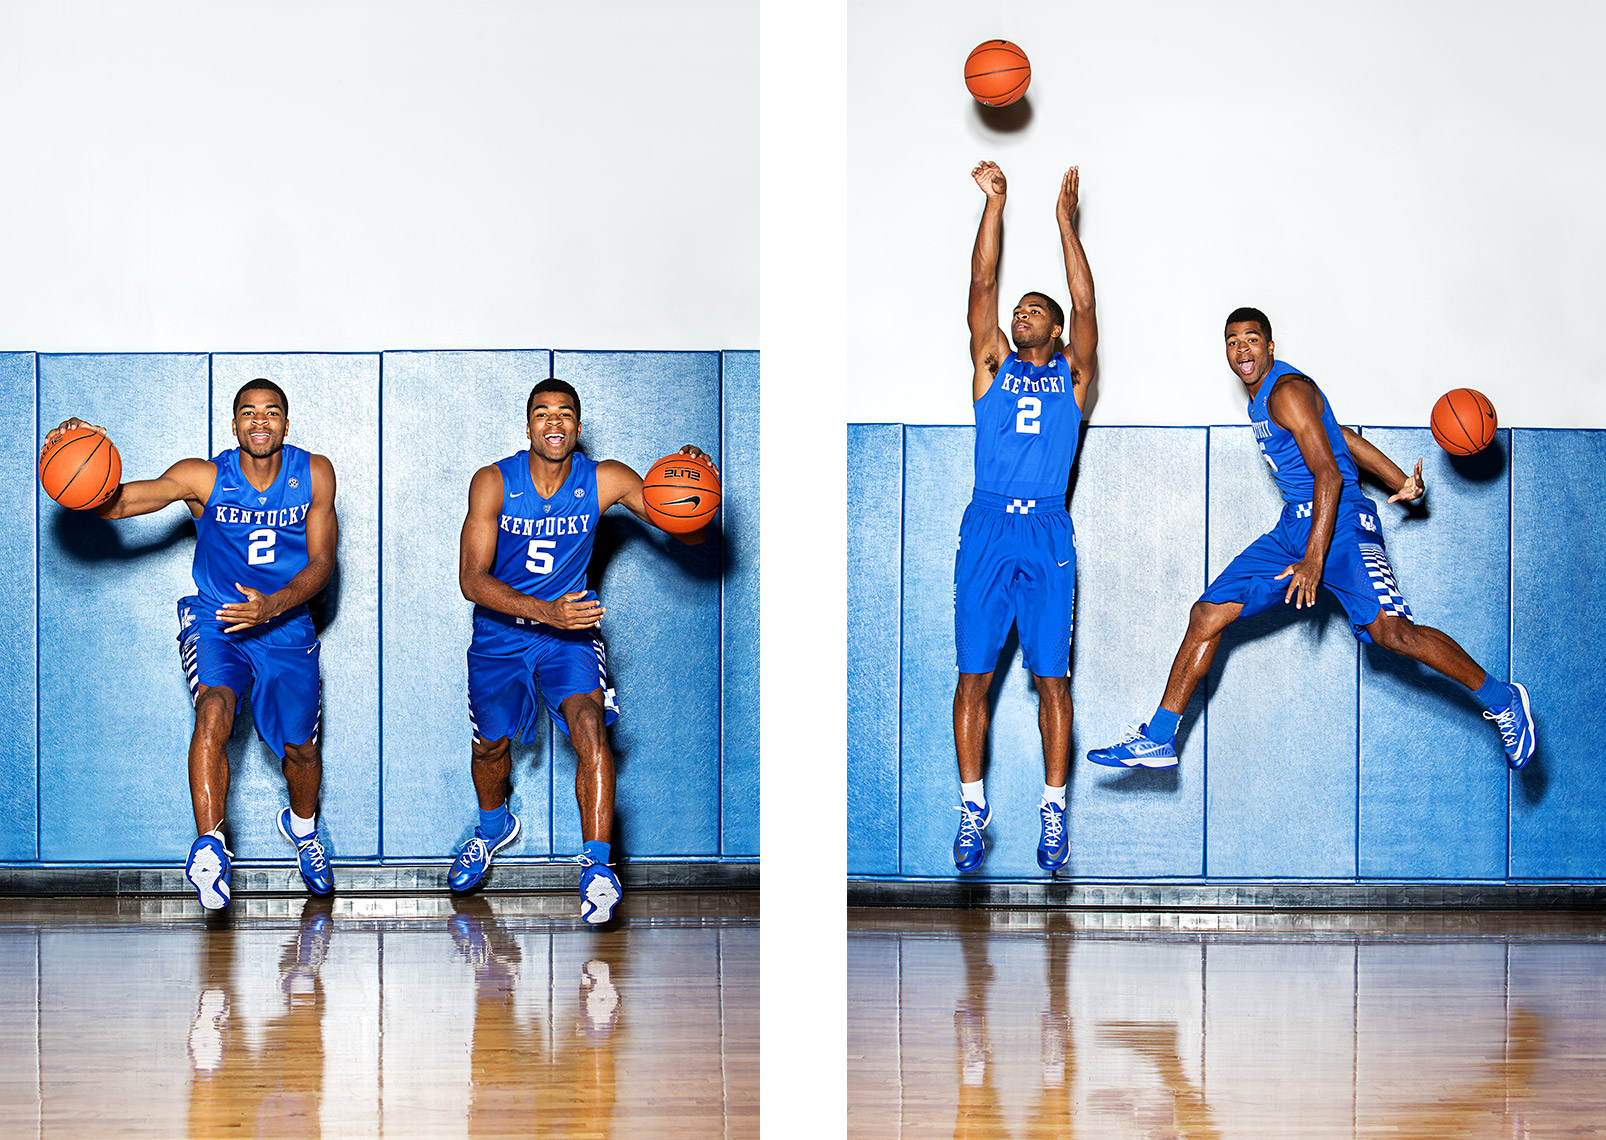 Philadelphia Photographer STEVE BOYLE - Kentucky Basketballl